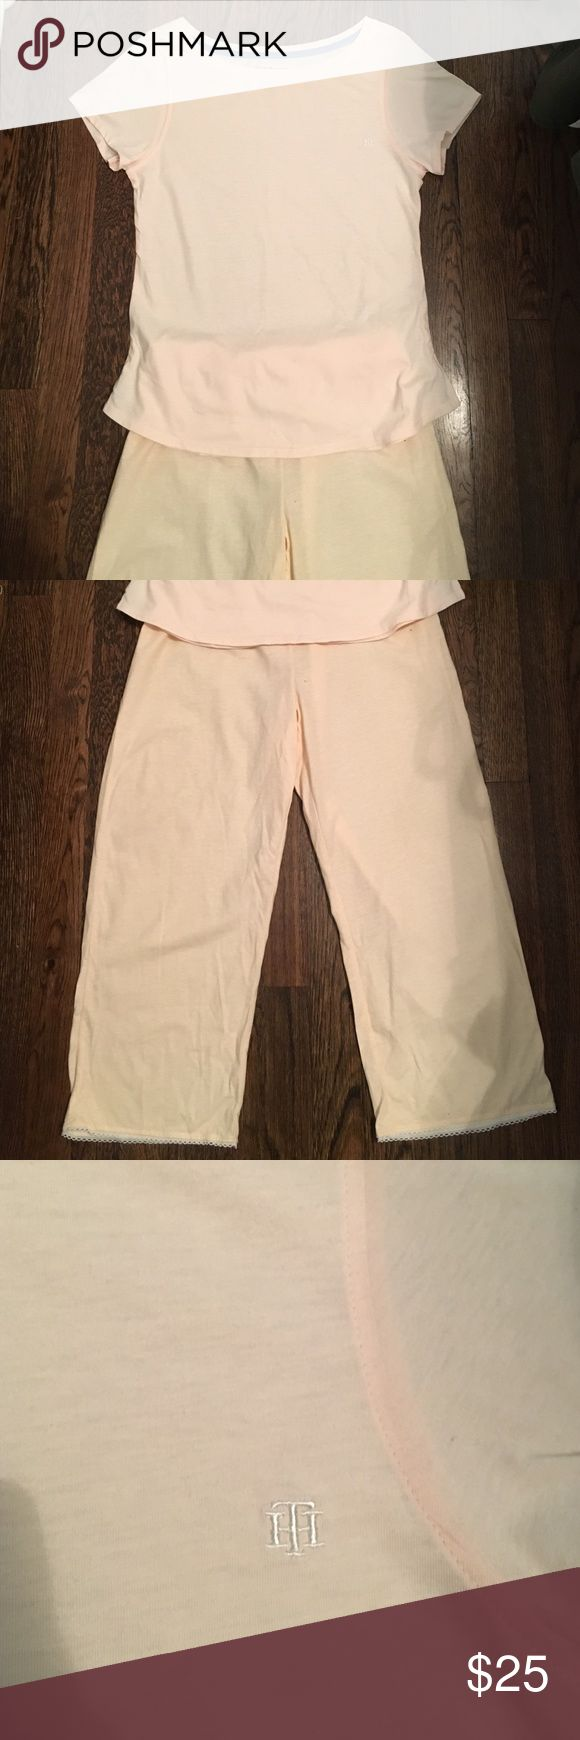 Tommy Hilfiger sleepwear set Tommy Hilfiger sleepwear set, light cream color, never worn..both pants and too size medium Tommy Hilfiger Intimates & Sleepwear Pajamas